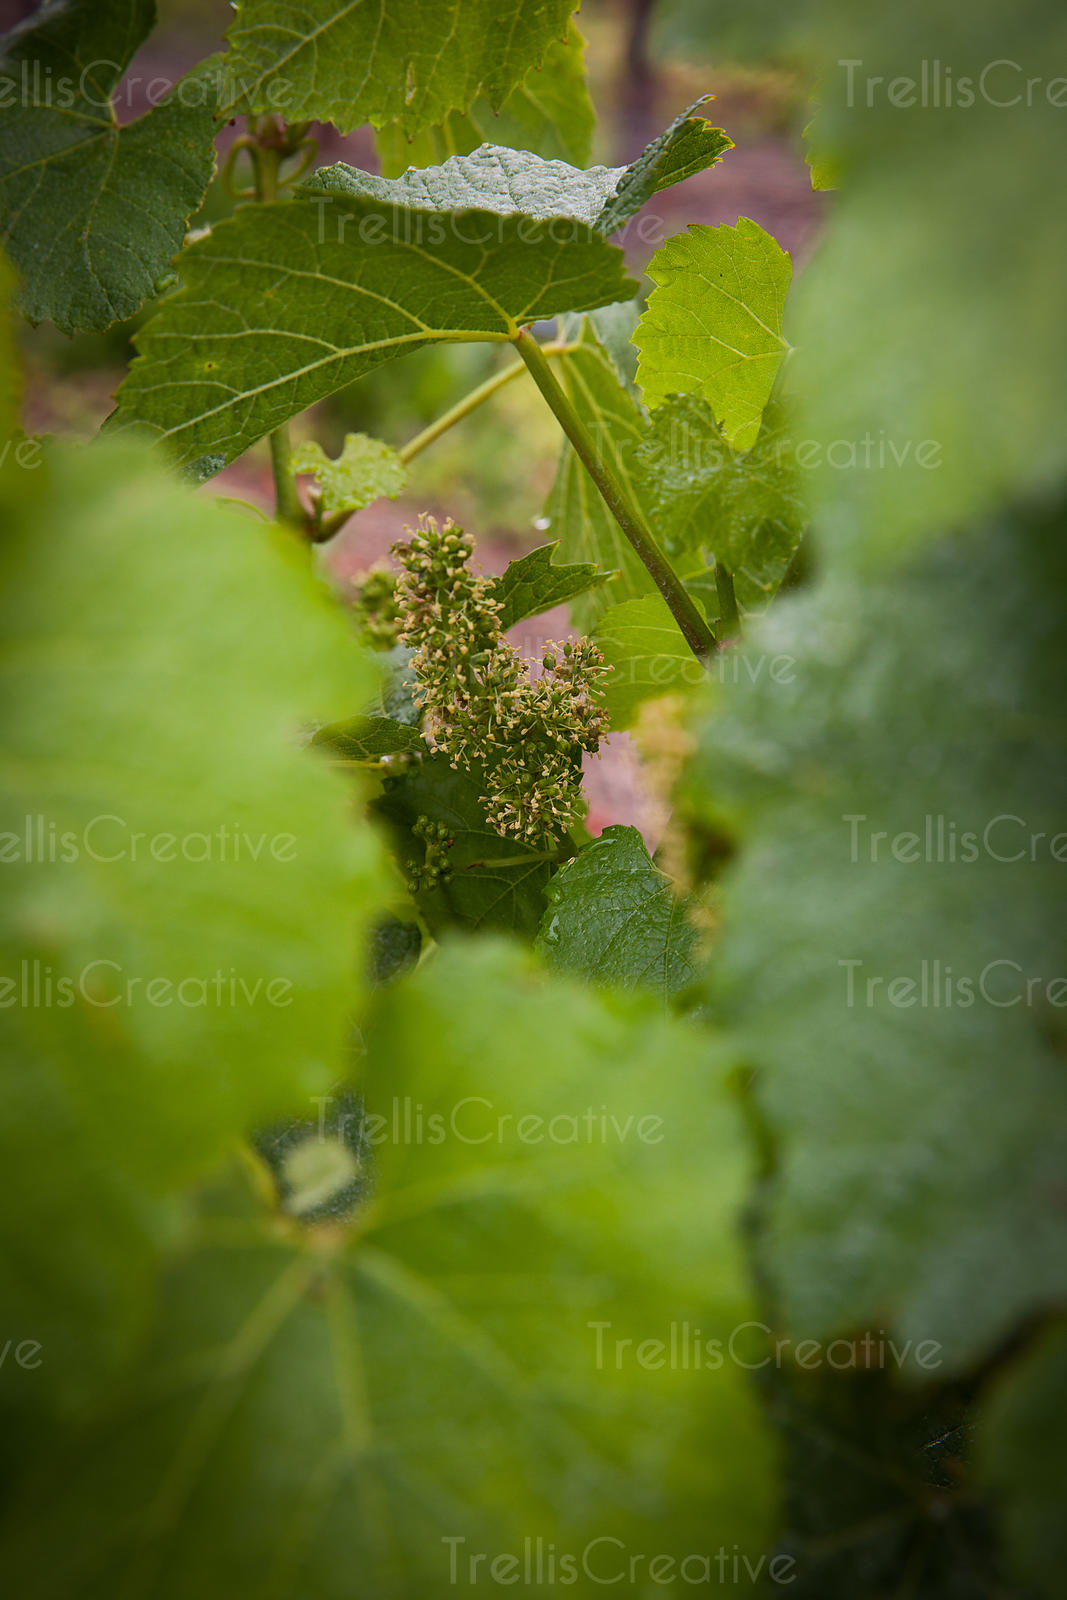 add to stock, baby grape cluster, bud break, flowering, futures, germinate, germination, grape growing, new beginnings, new life, new vintage, stock, vines, viticulture, wine grapes